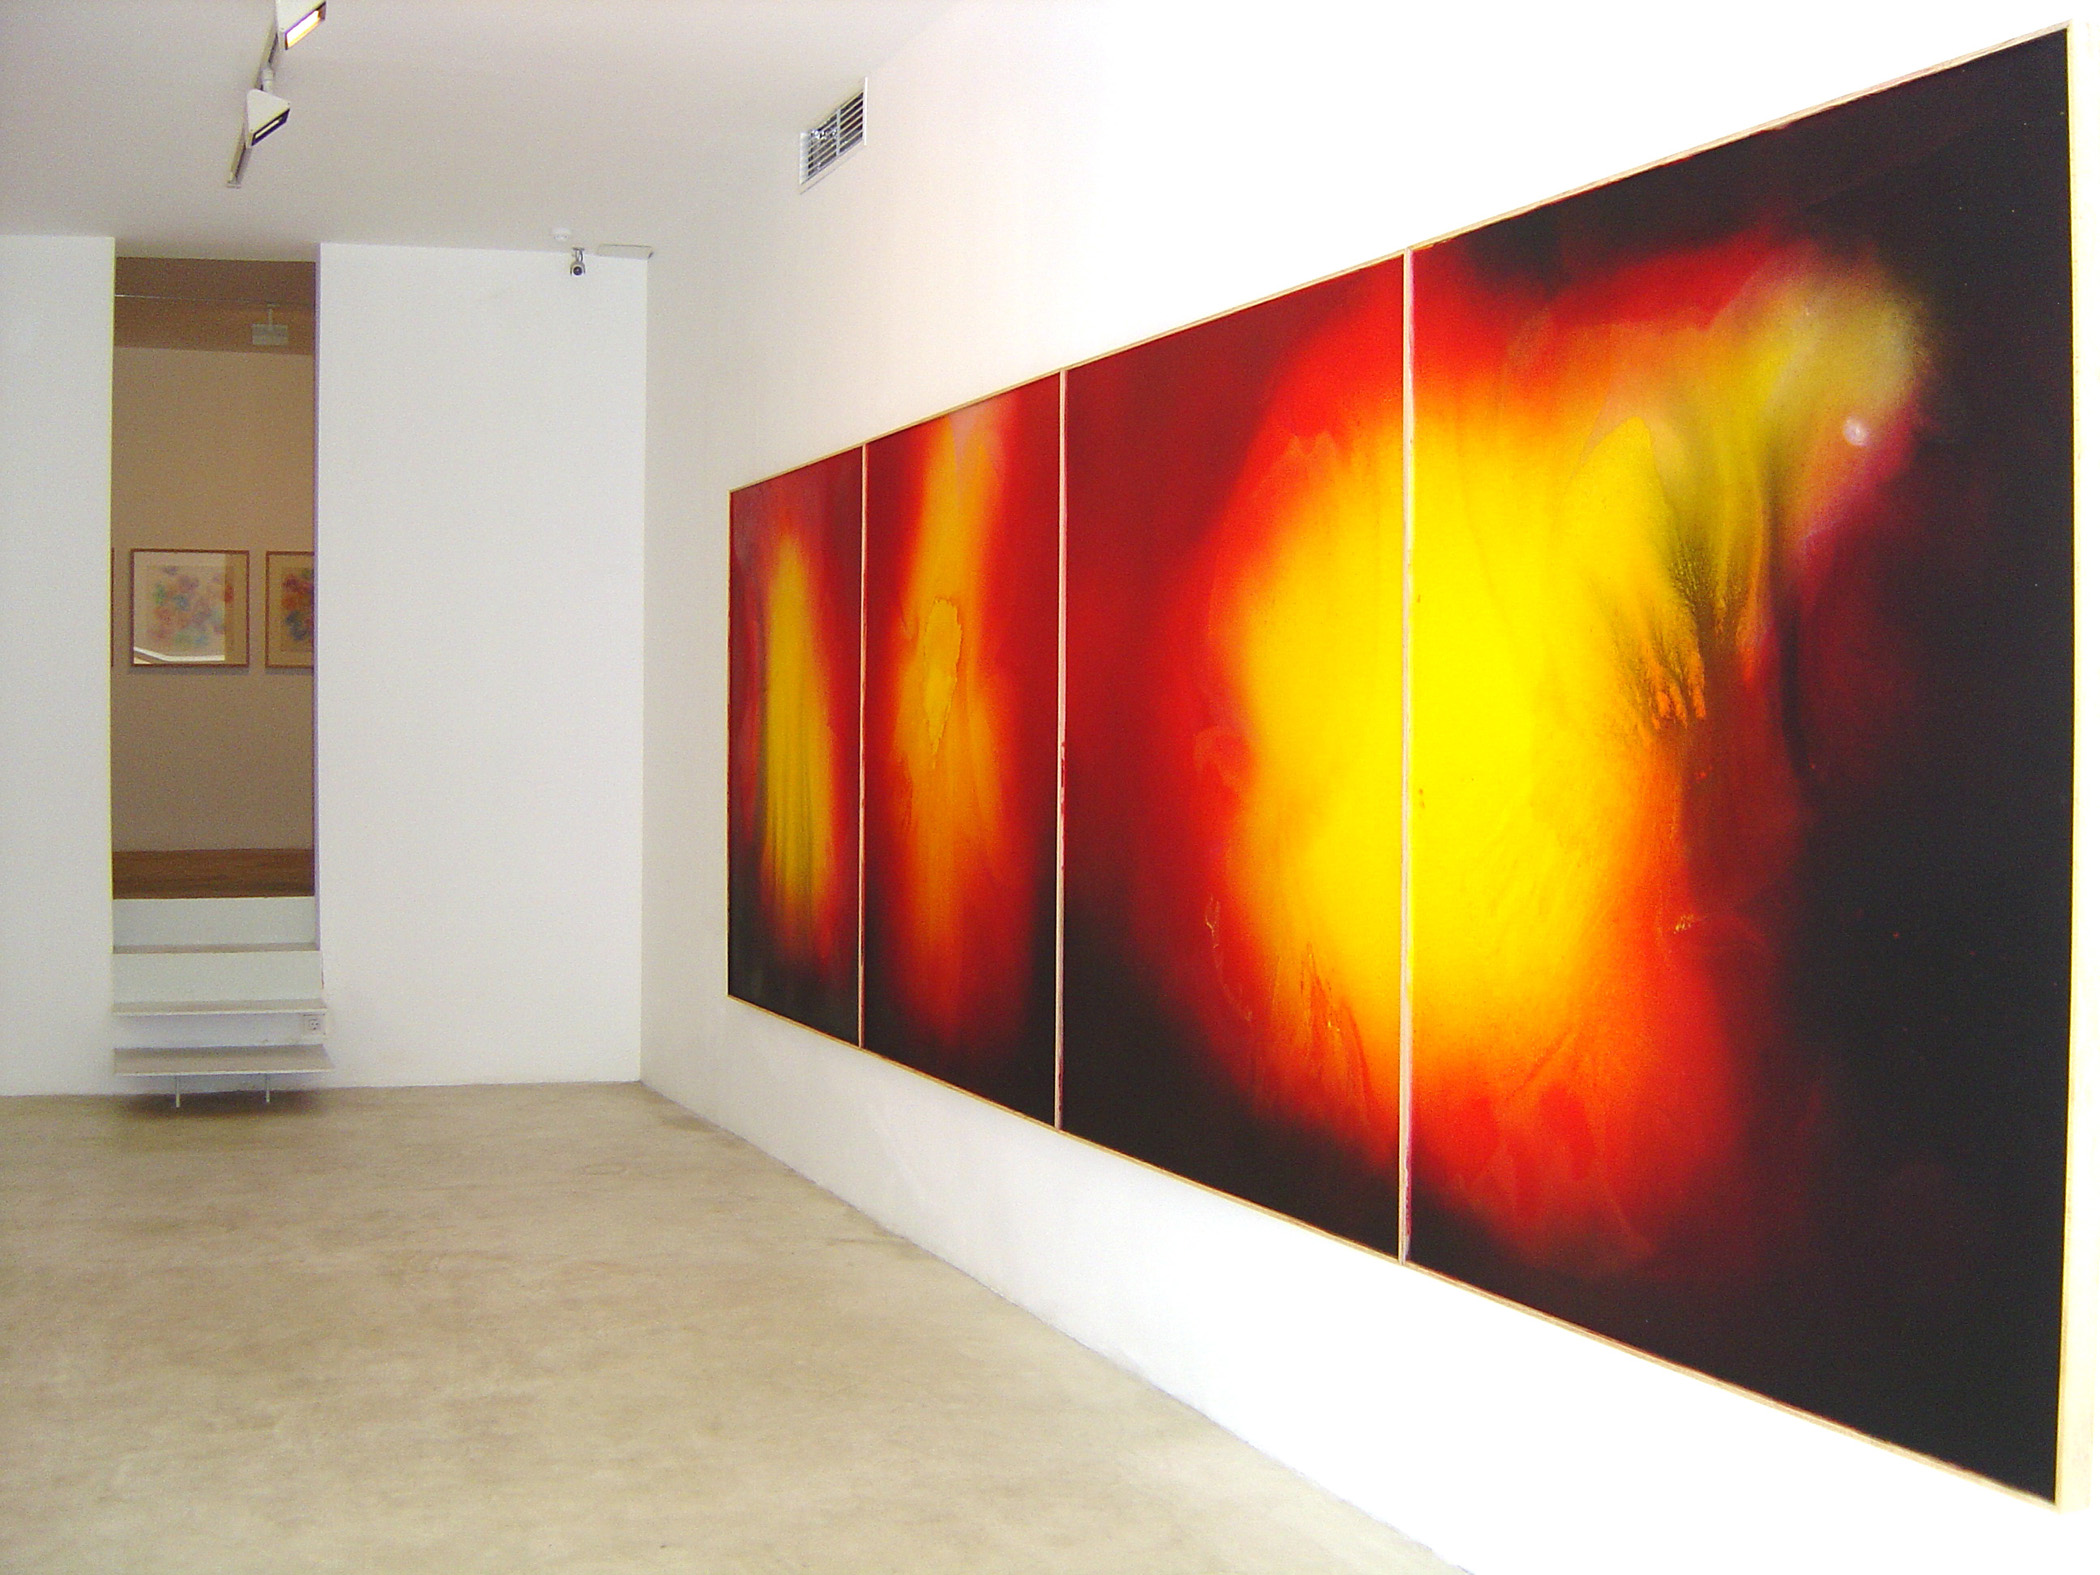 Exhibition view from Jose Maria Sicilia, 2004